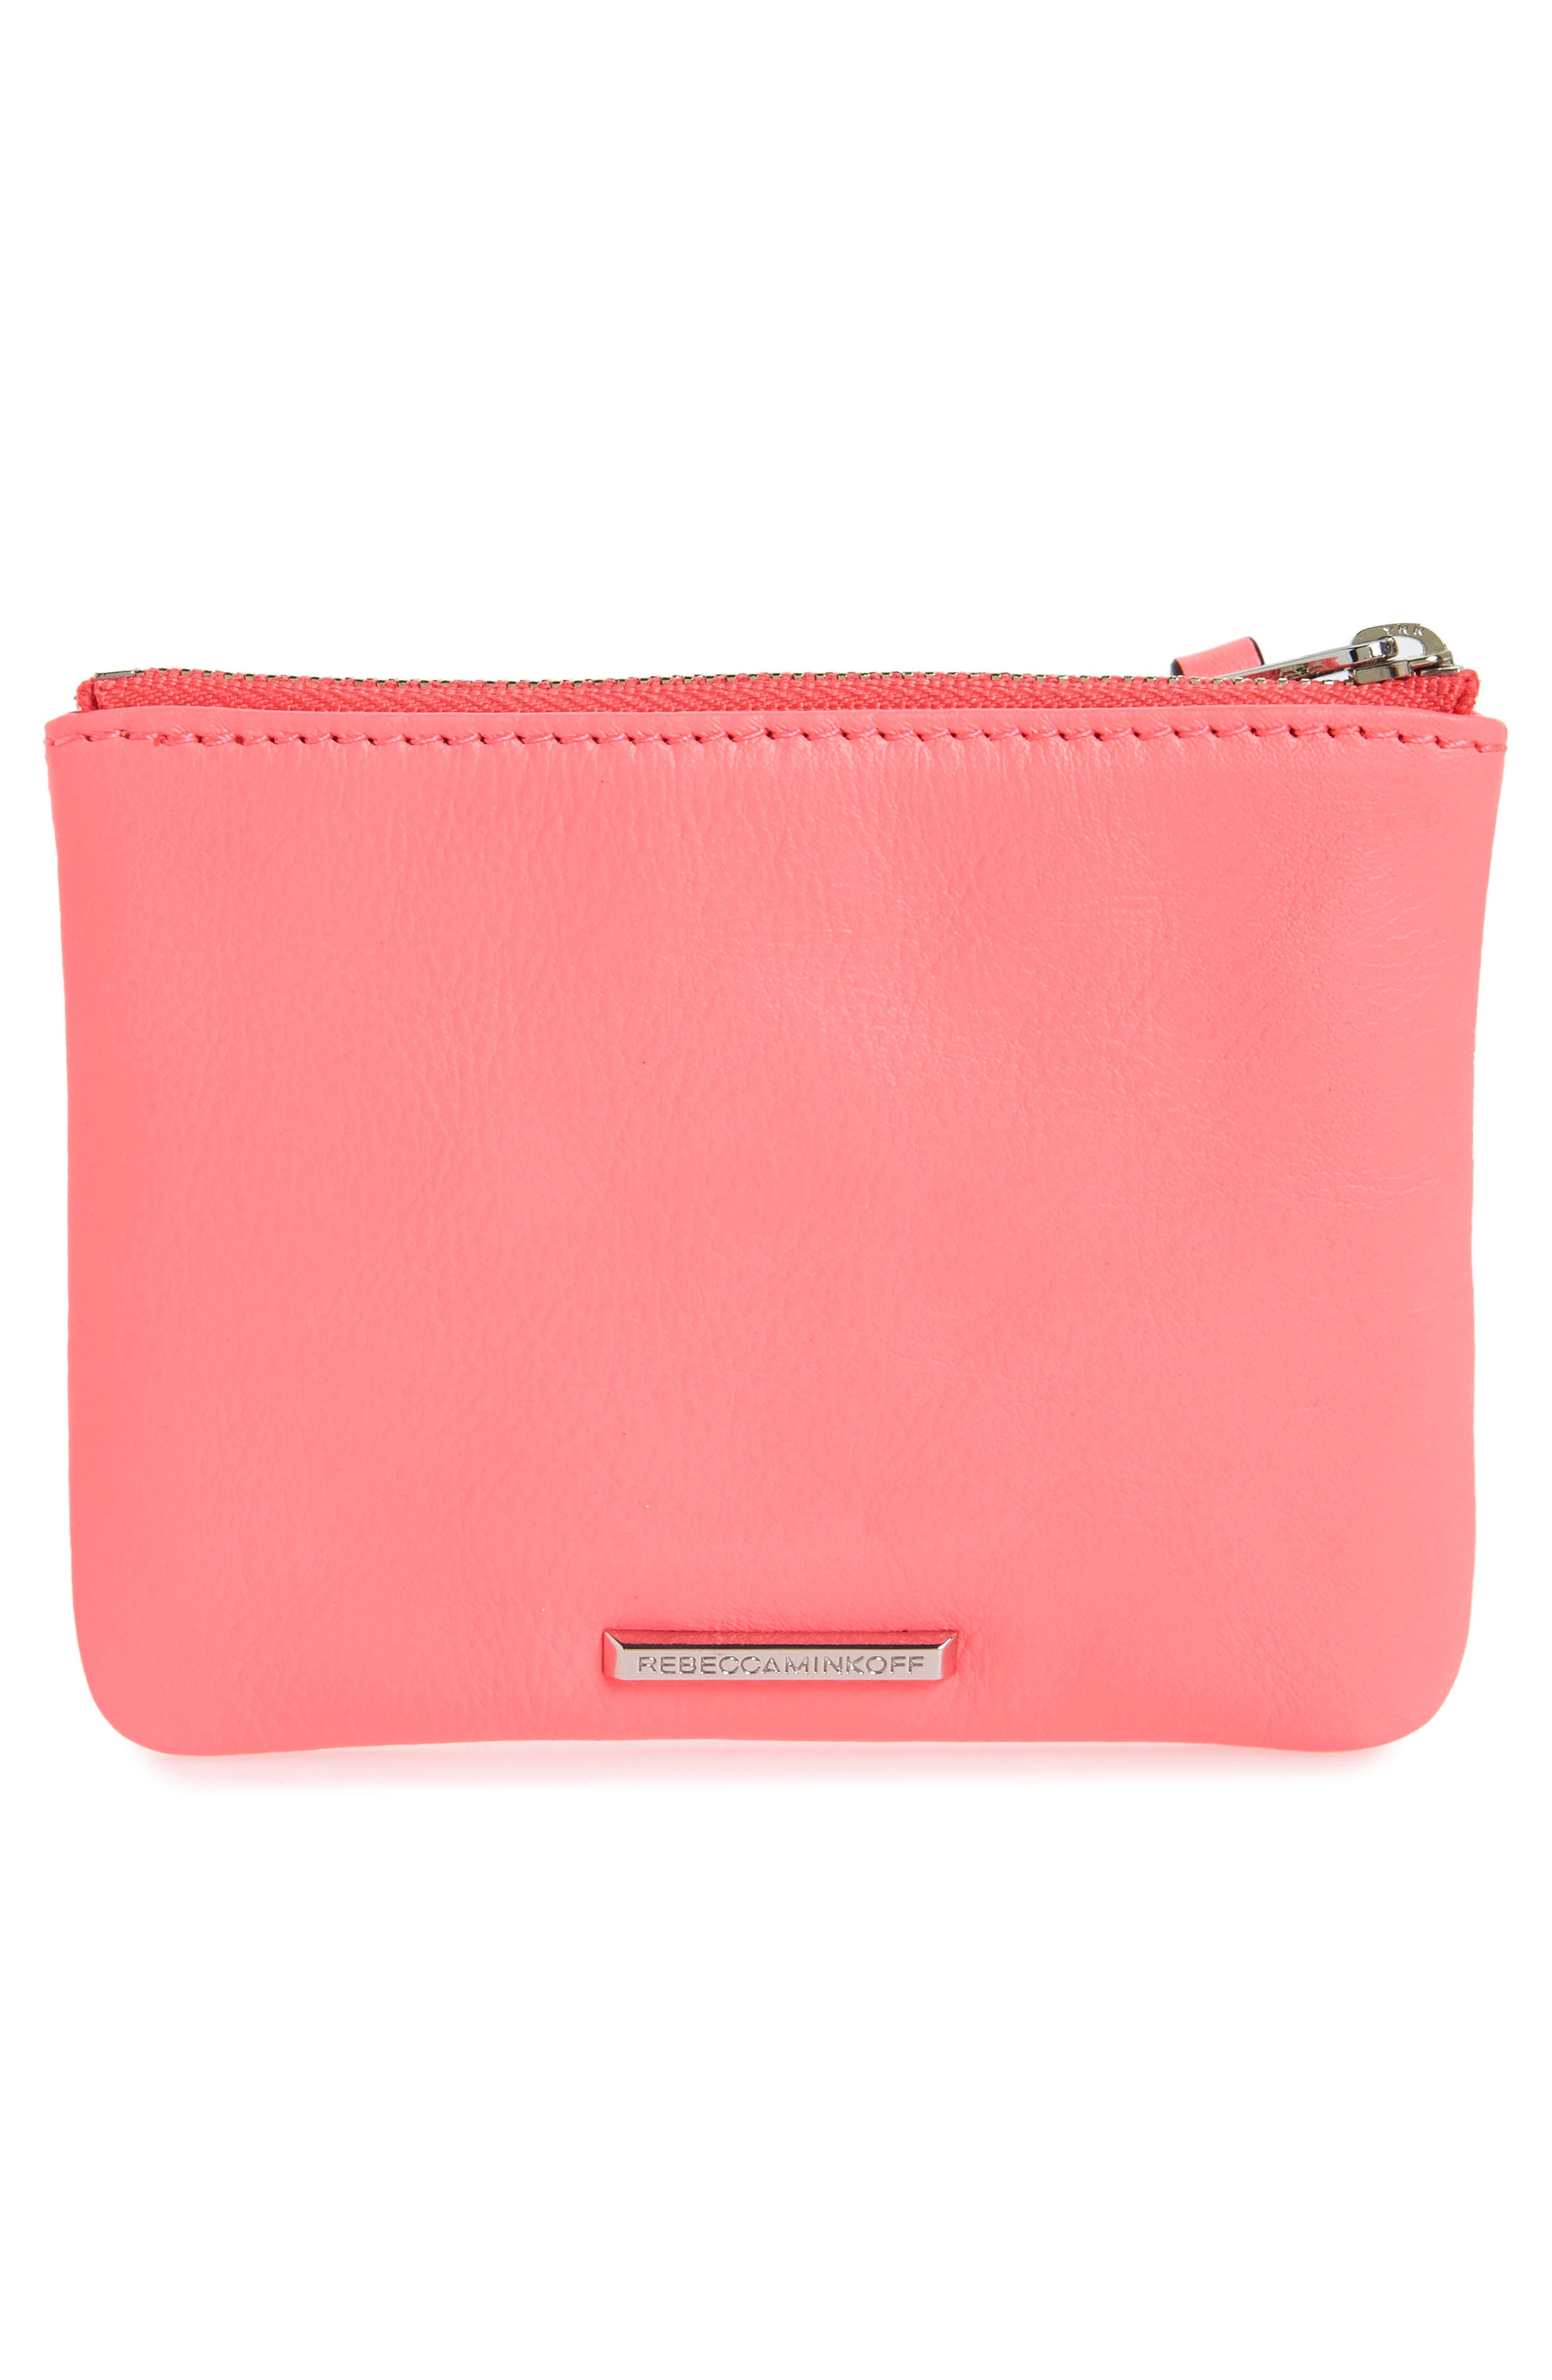 Betty - Be a Unicorn Leather Pouch,                             Alternate thumbnail 3, color,                             Neon Pink